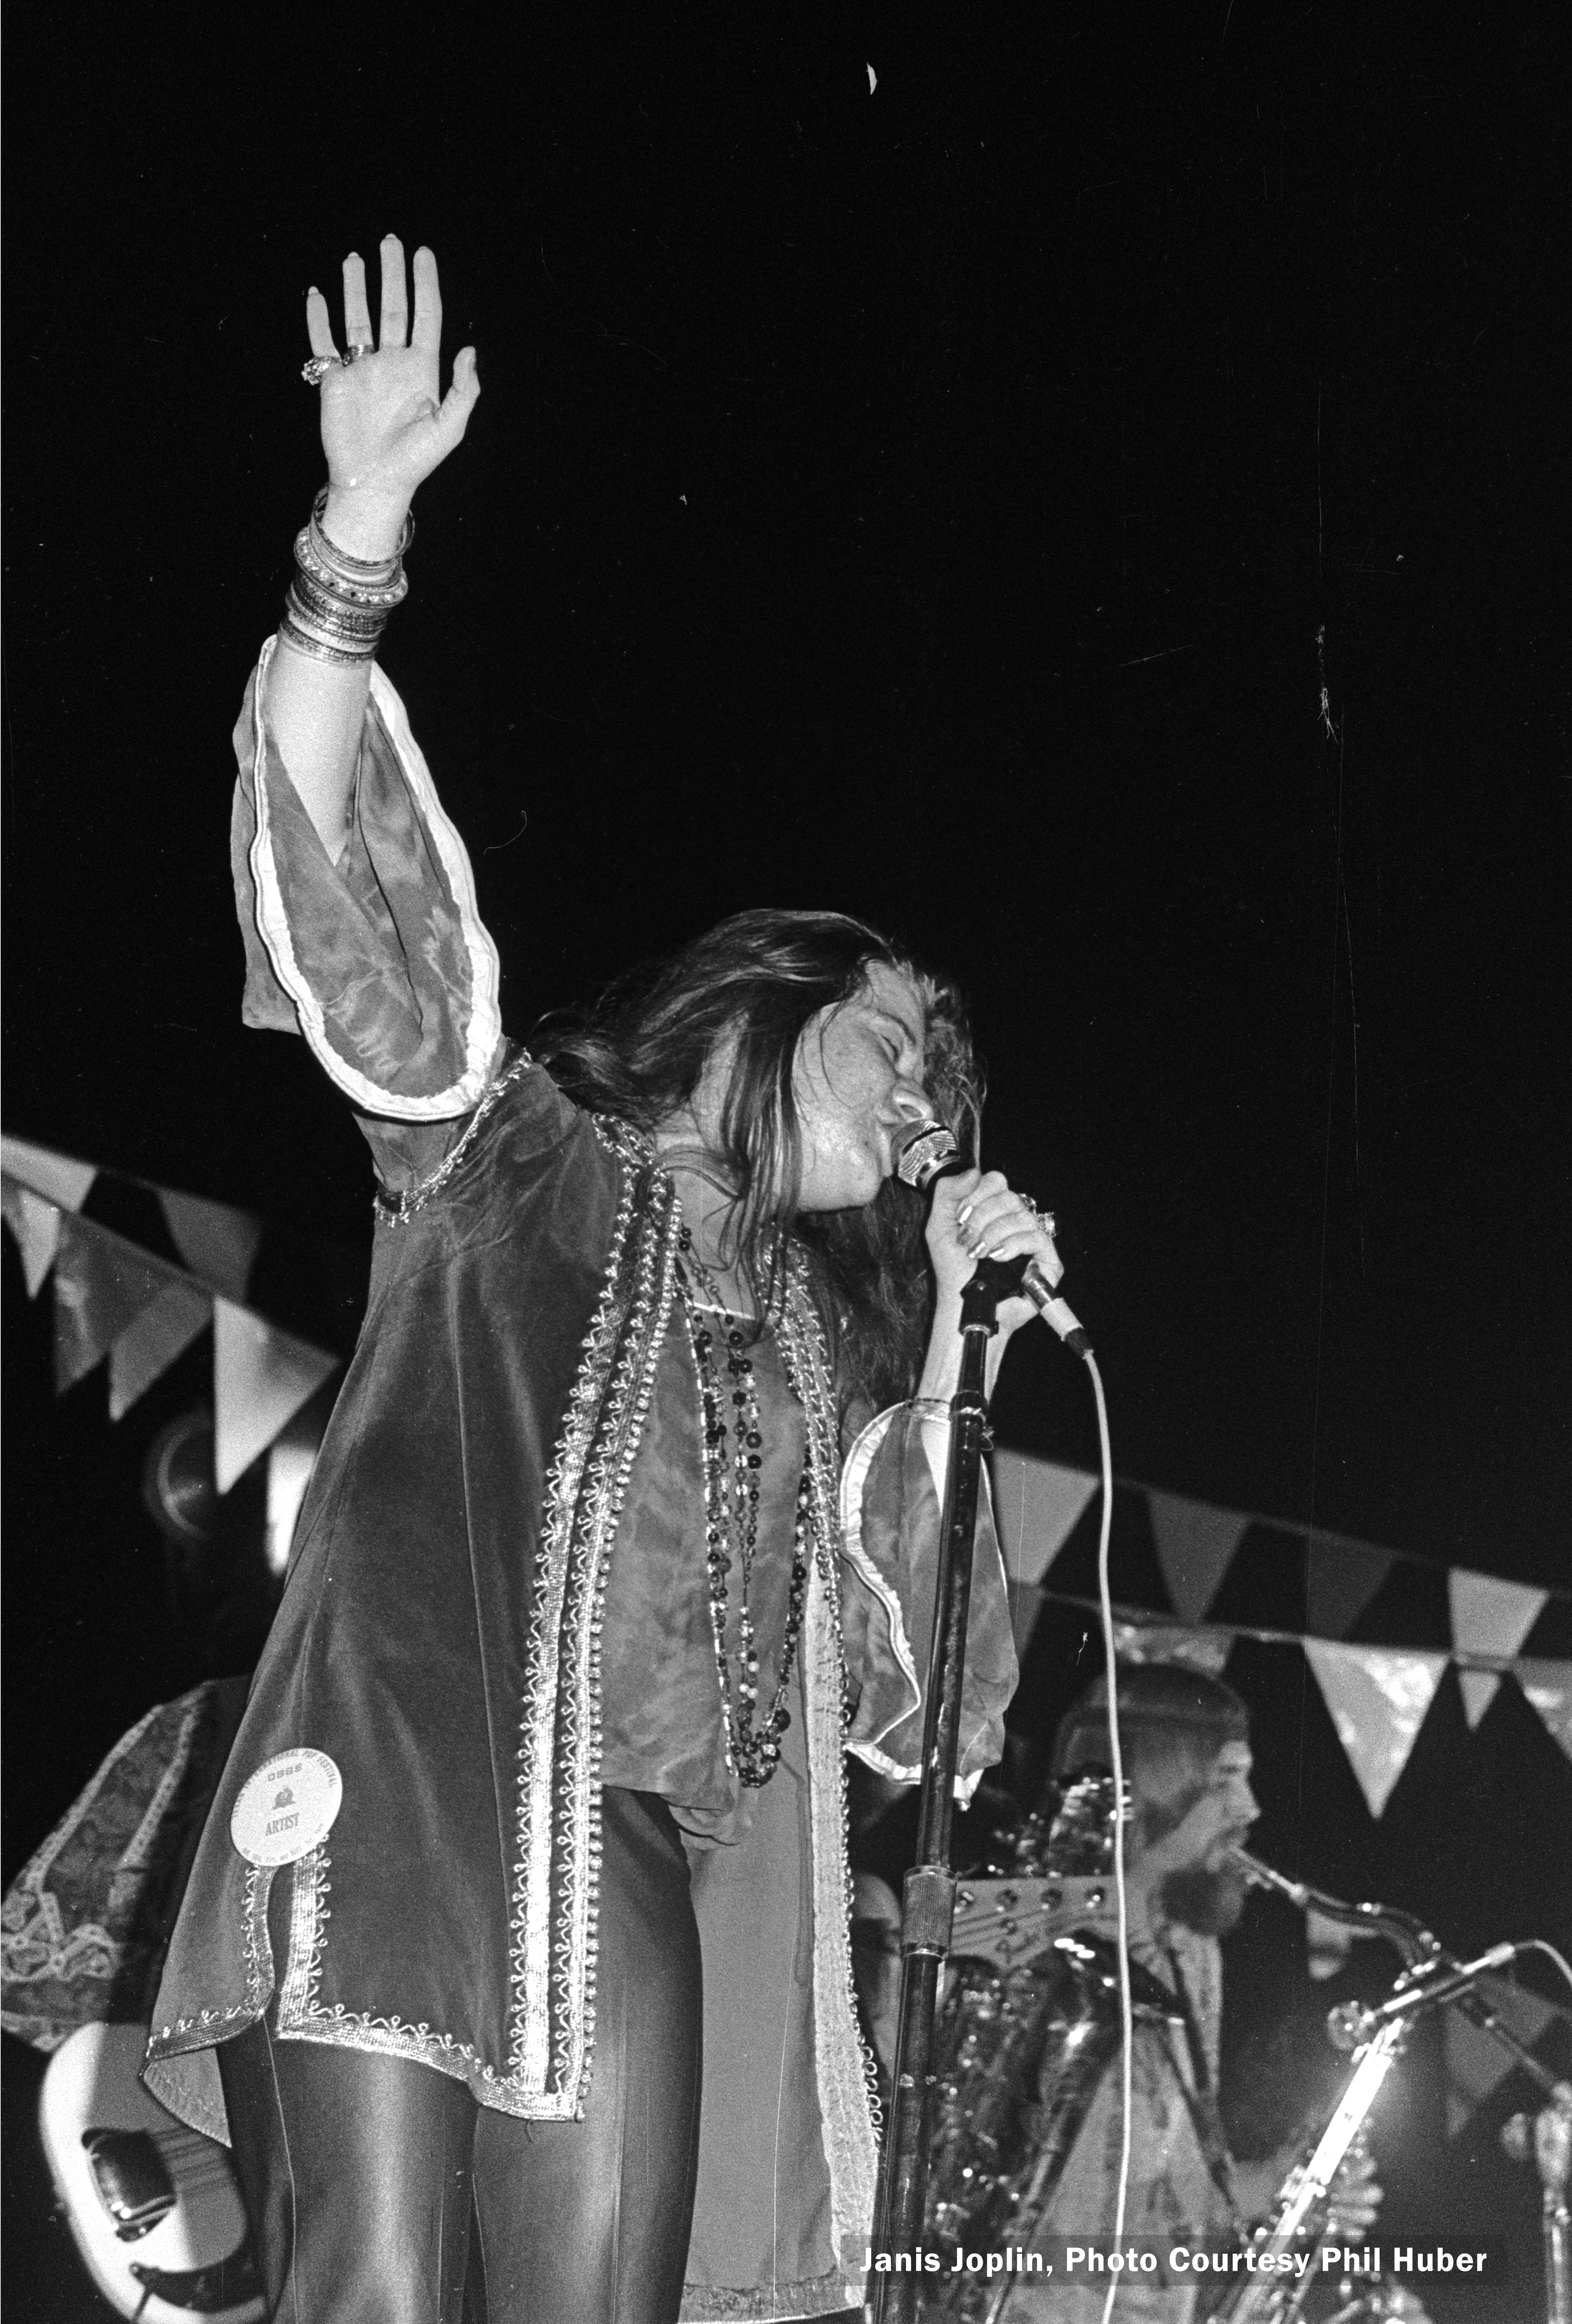 Janis Joplin at Texas International Pop Fest. Photo: Courtesy of Denton County Office of History and Culture.